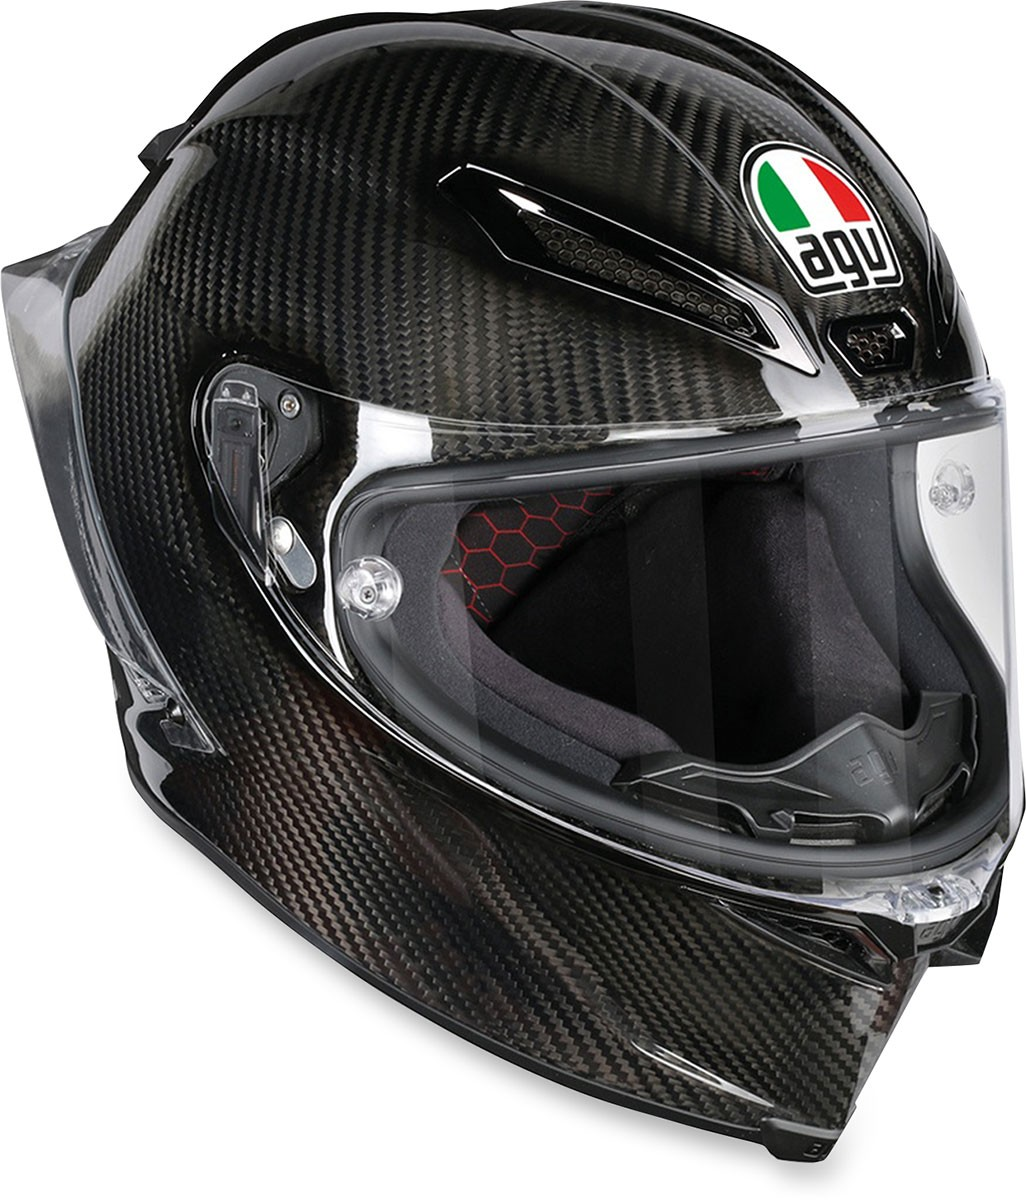 agv pista gp r carbon full face motorcycle helmet gloss carbon fiber. Black Bedroom Furniture Sets. Home Design Ideas